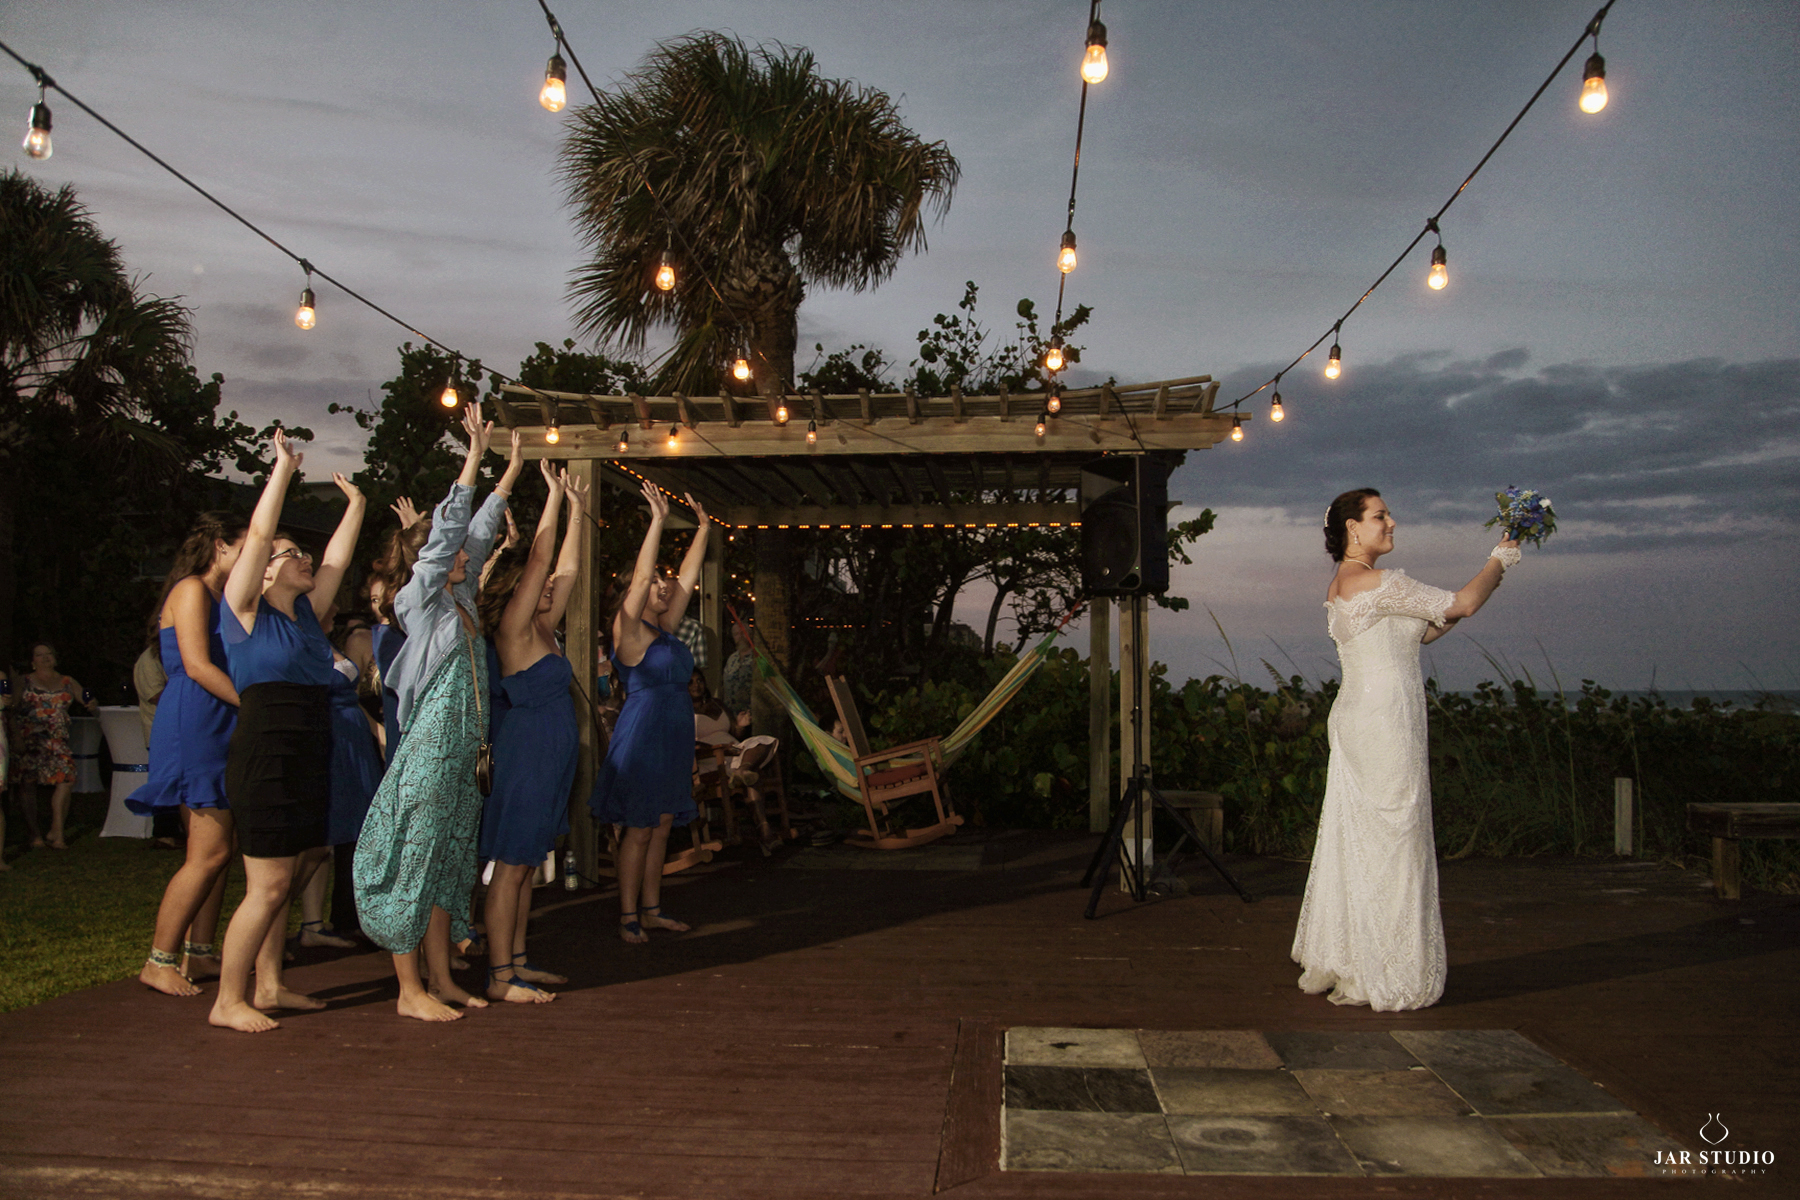 36-bouquet-toss-outdoor-beach-reception-jarstudio-photographer-orlando.JPG